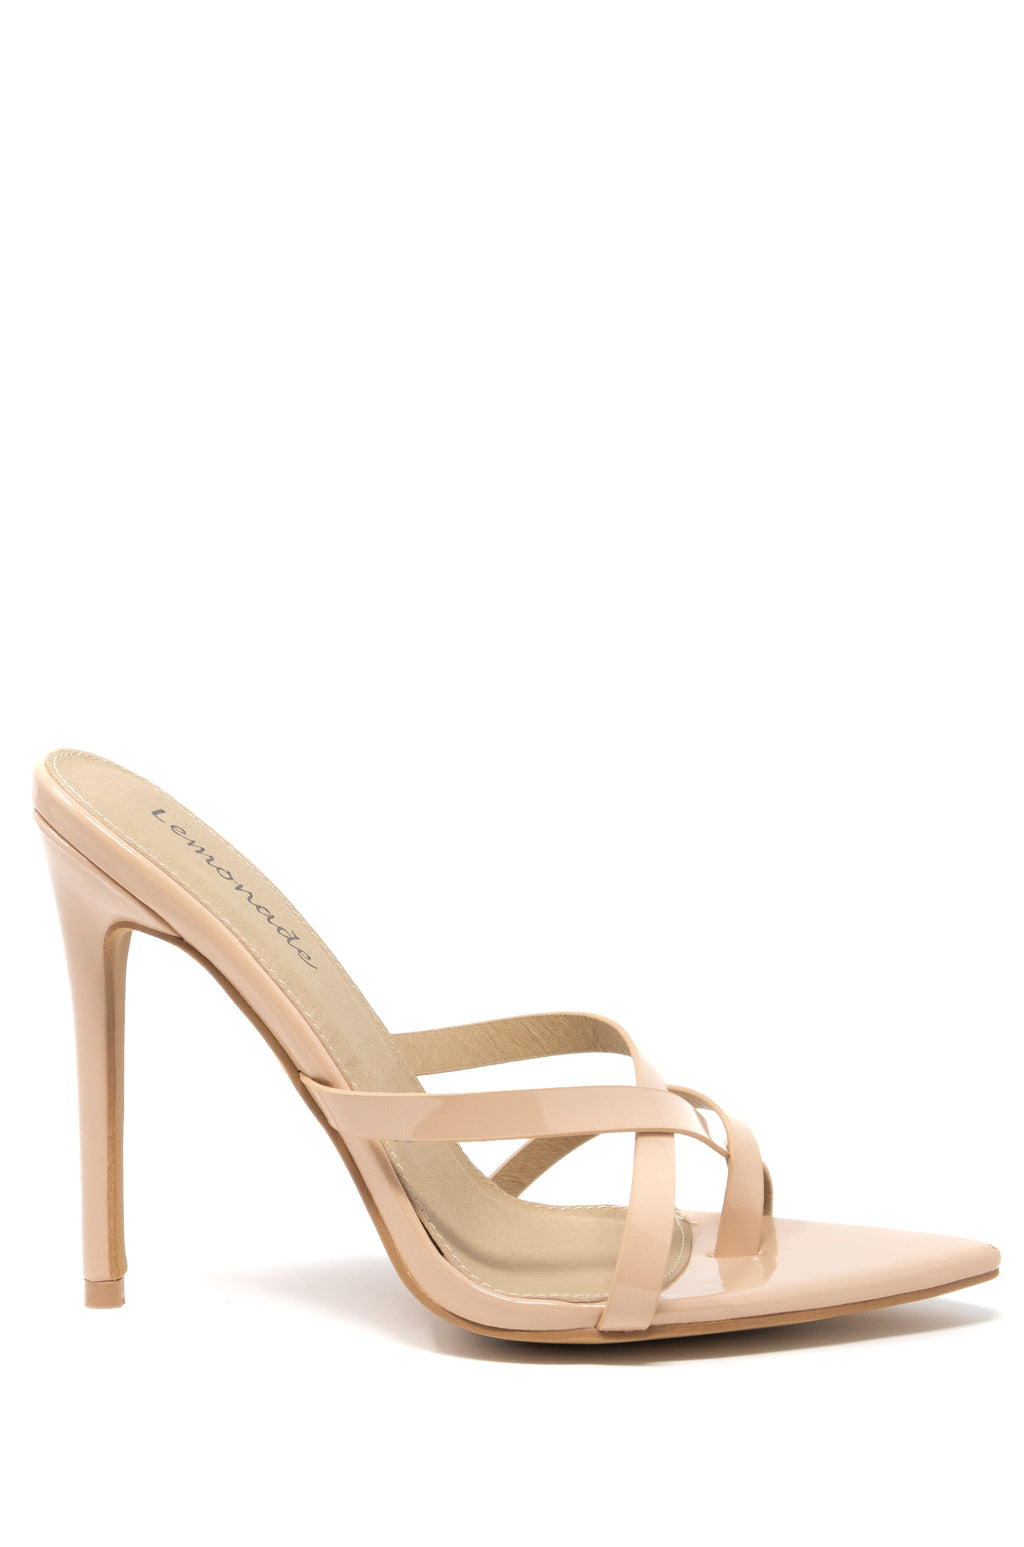 Good Times Only - Nude Strappy Stiletto Mules